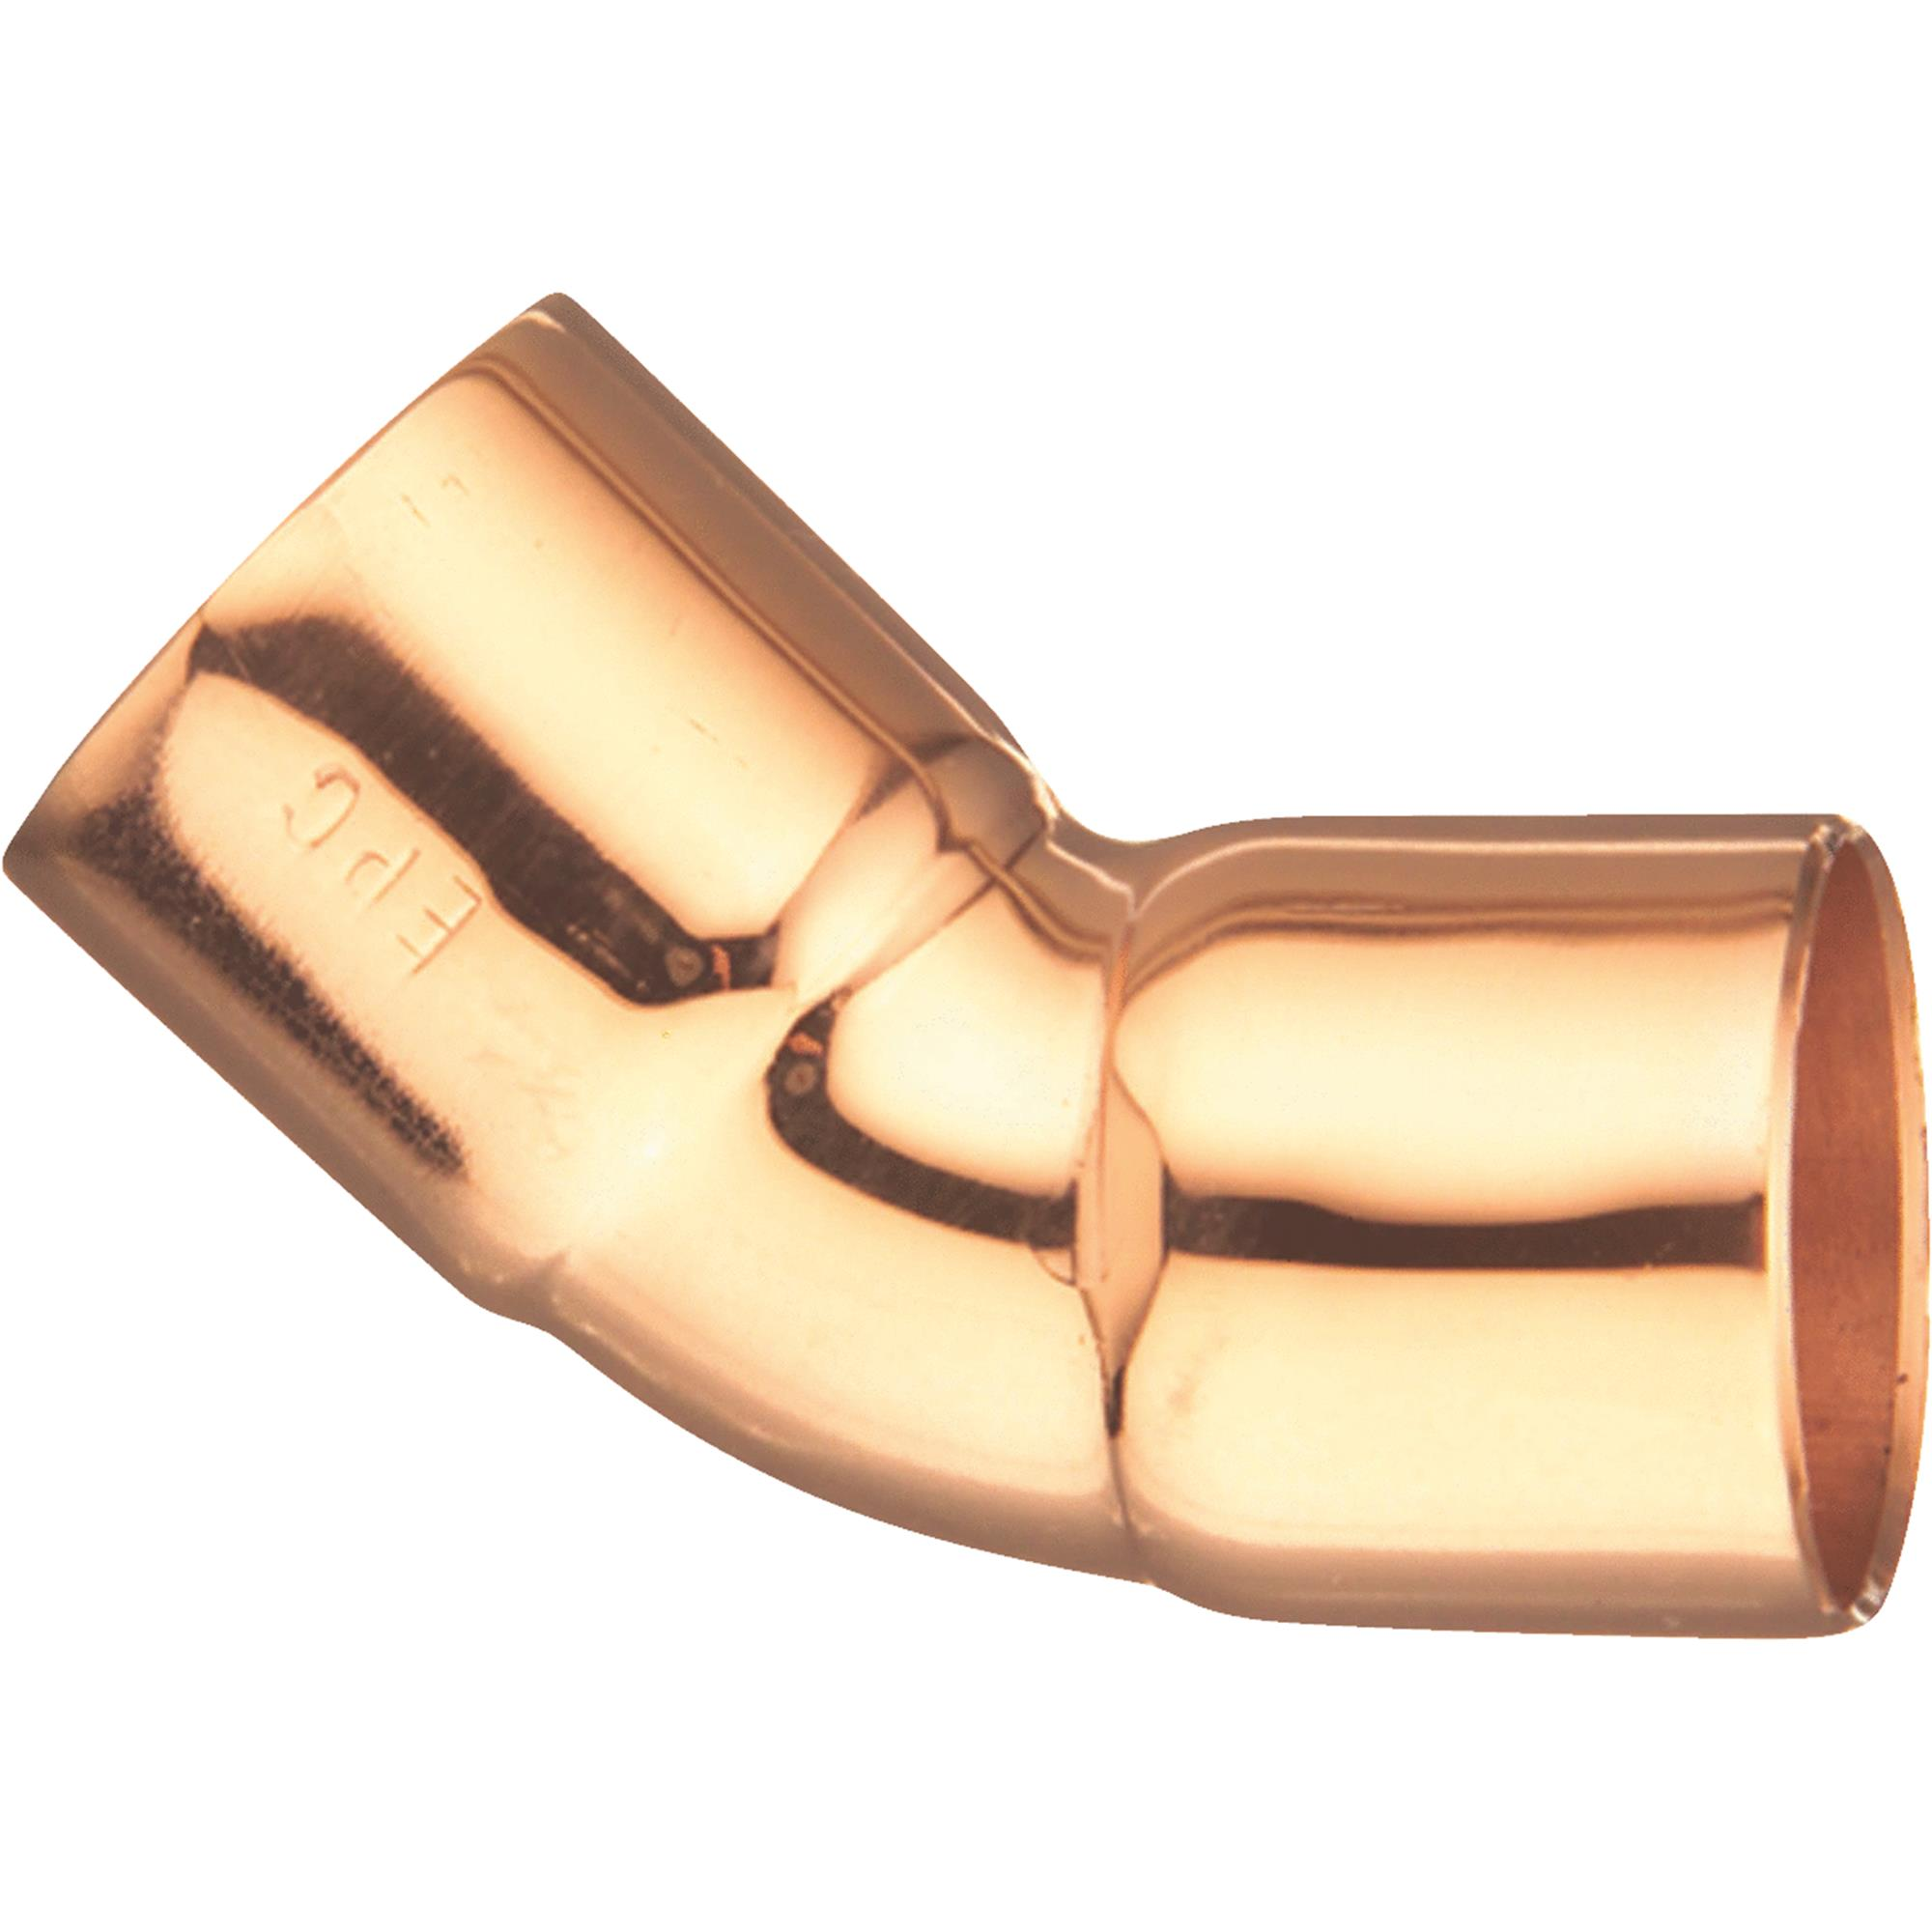 EPC 31106 Solder Pipe Elbow 45 deg 3/4 in Copper Wrot Copper